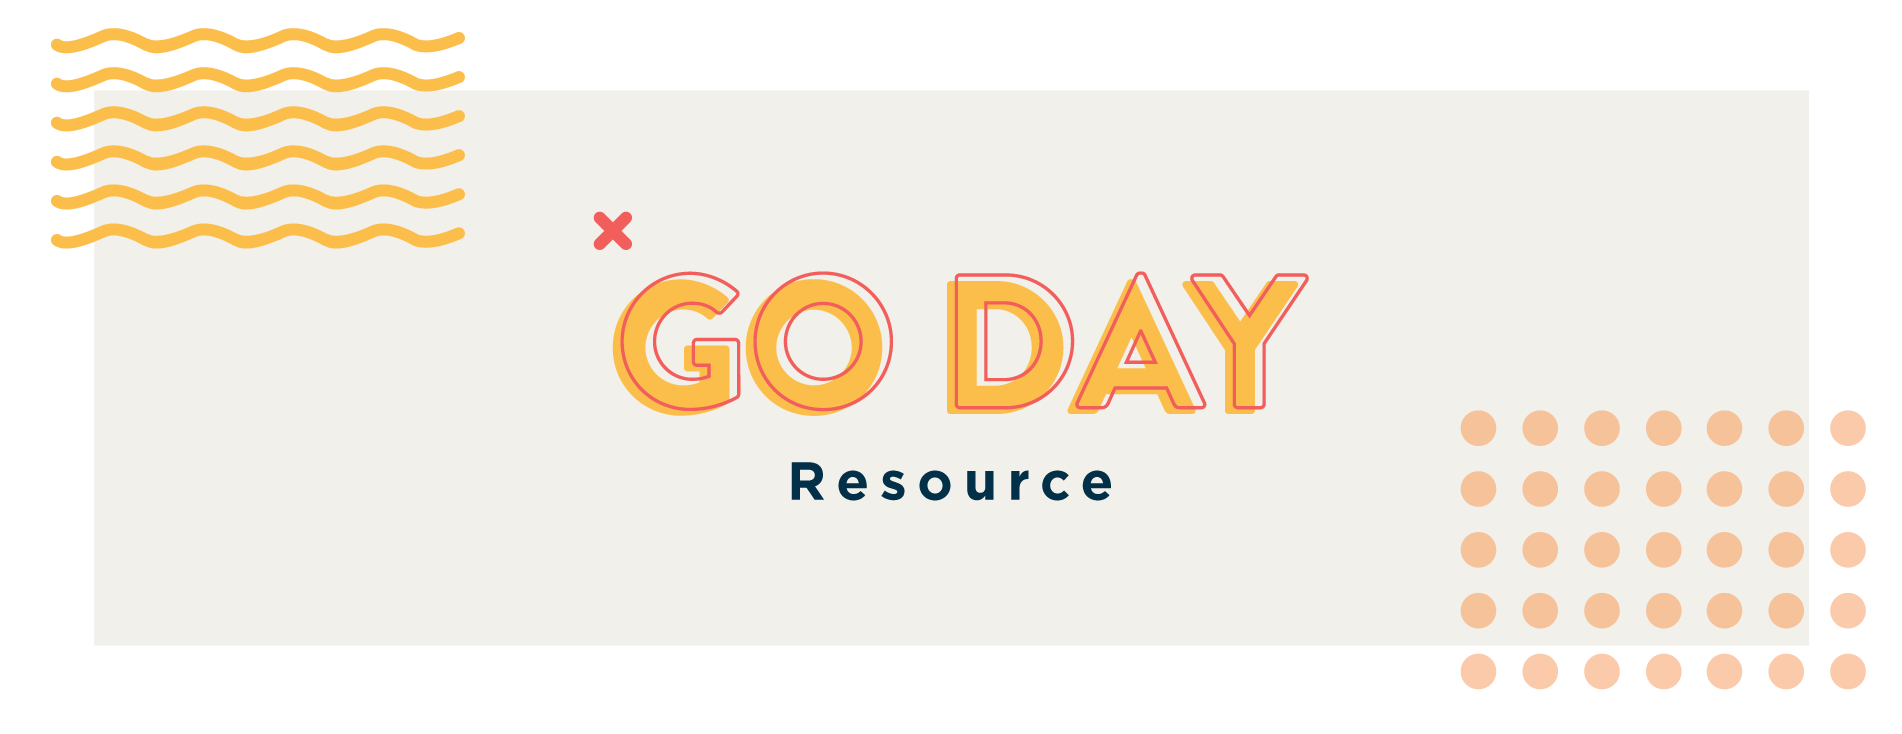 Go-Day-Resource-Banner.png